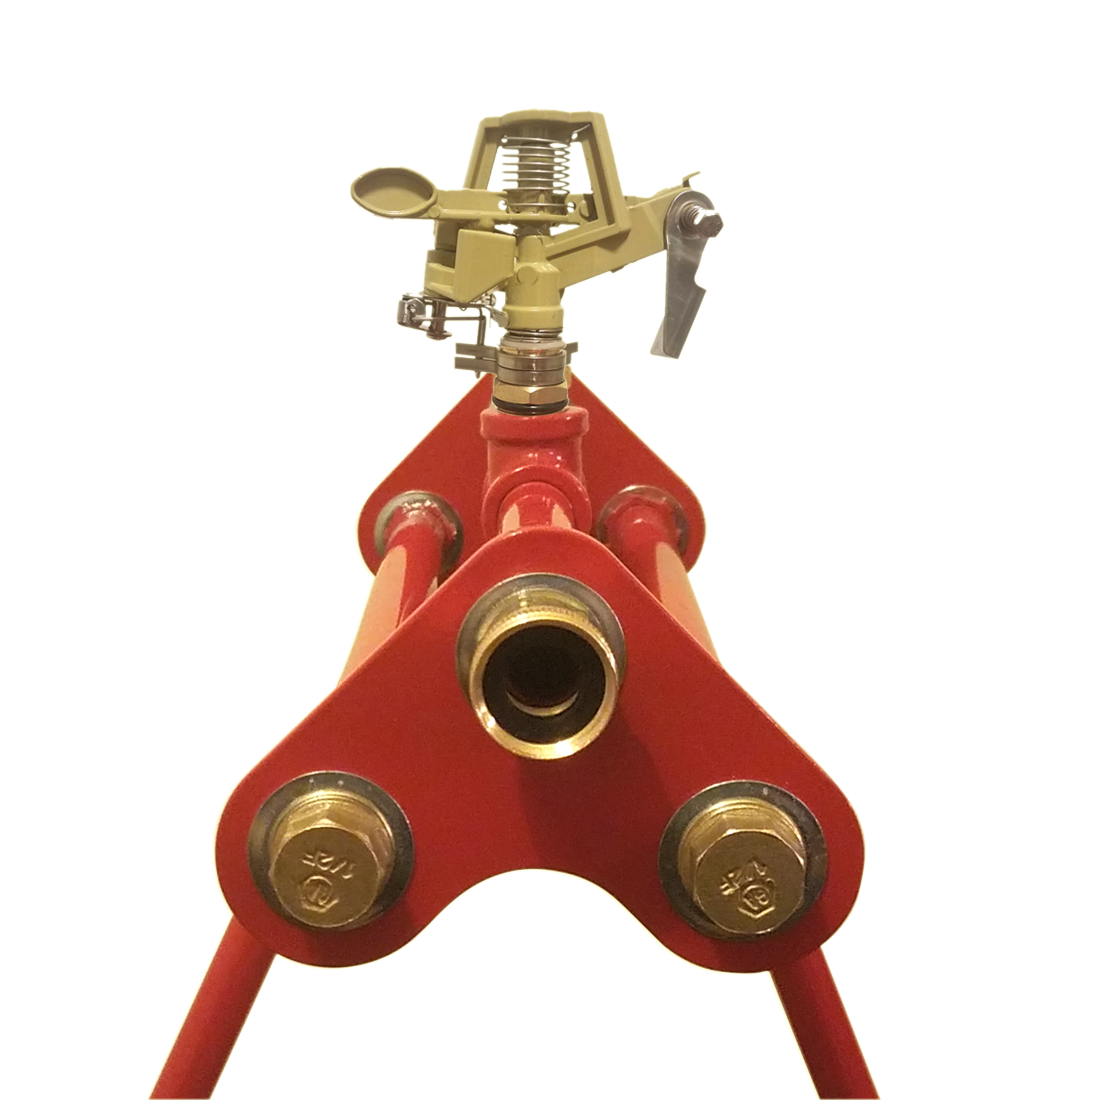 rooftop sprinkler system_store products_Ember-S-guard™ Roof-top Sprinkler with Swivel Brass Adapter Fittings-6